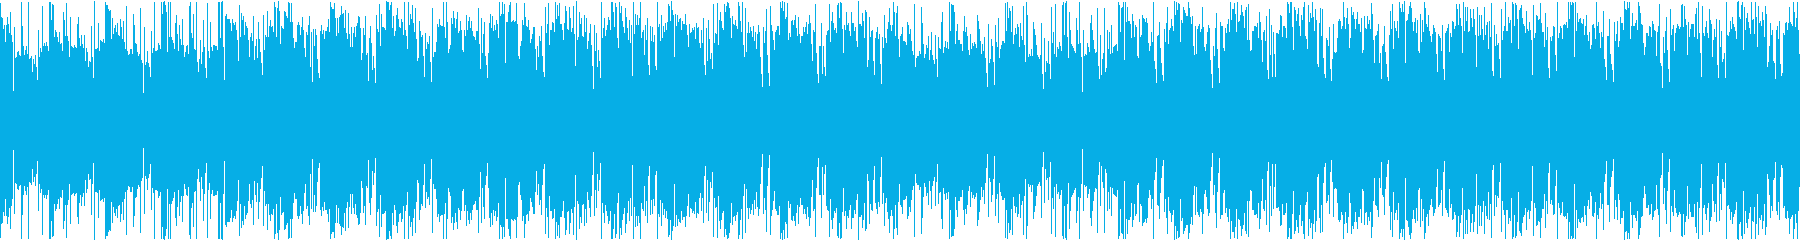 Comical song of flute and percussion's reproduced waveform